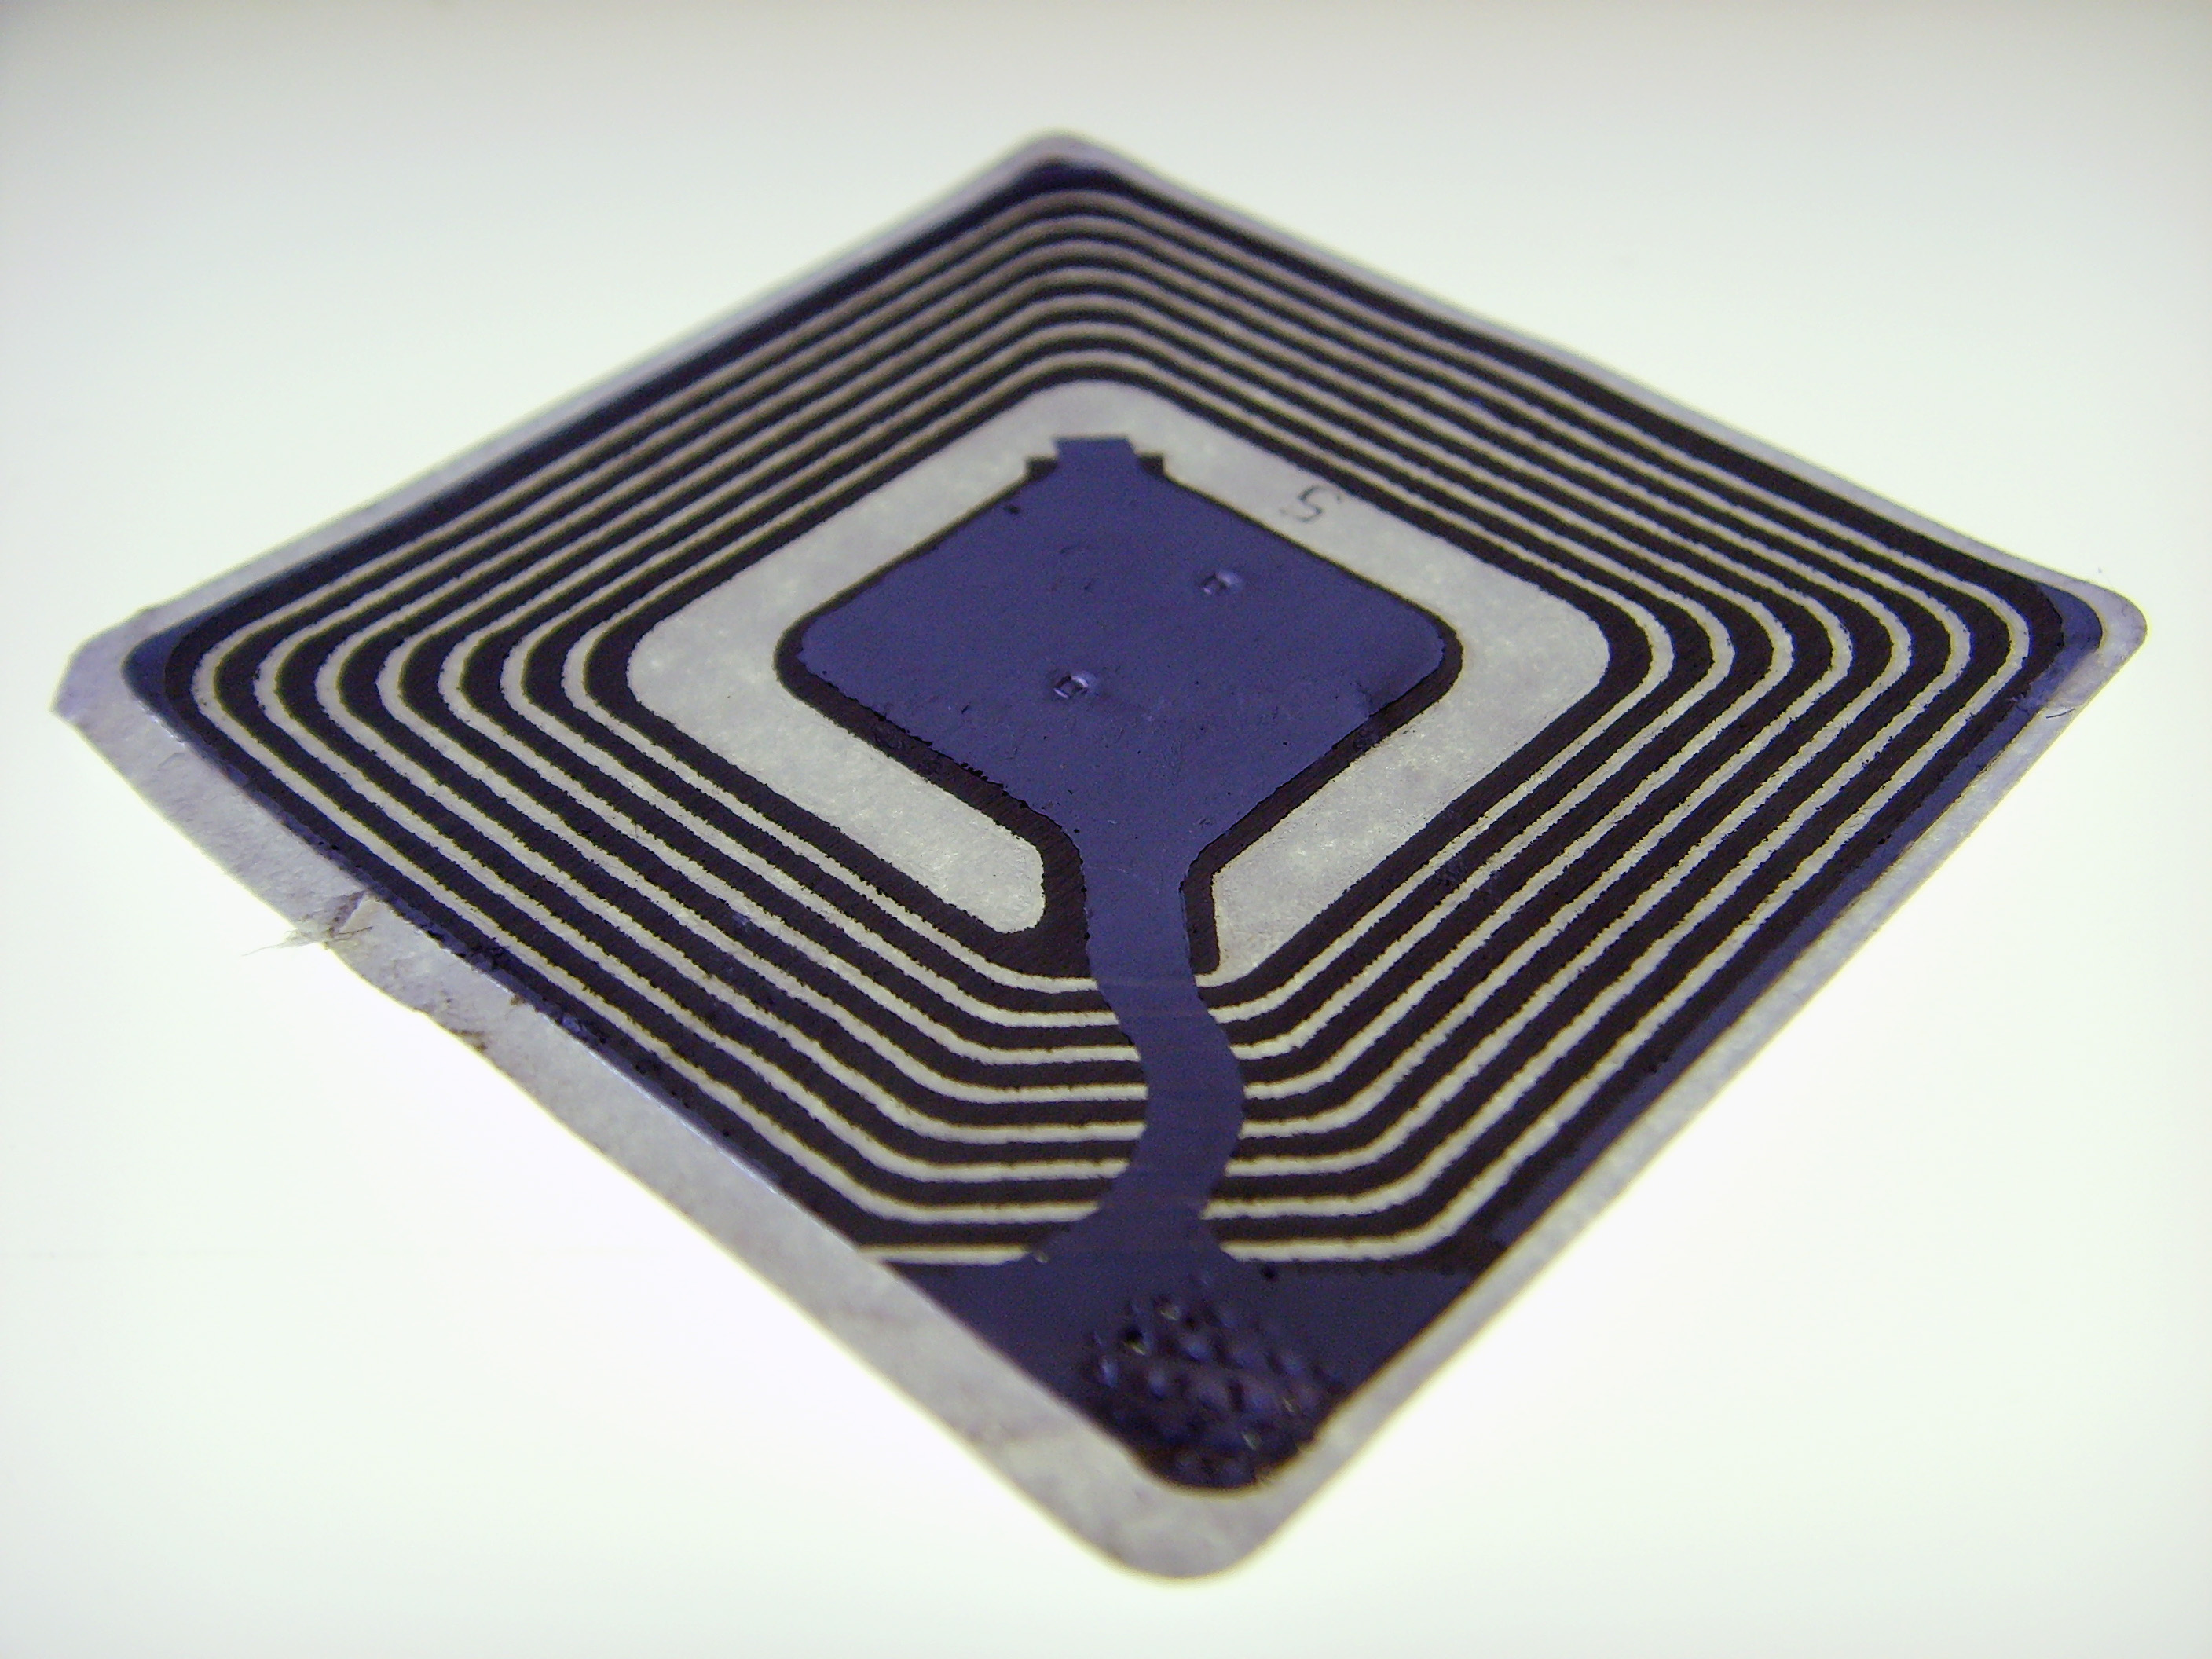 image of a rfid tag